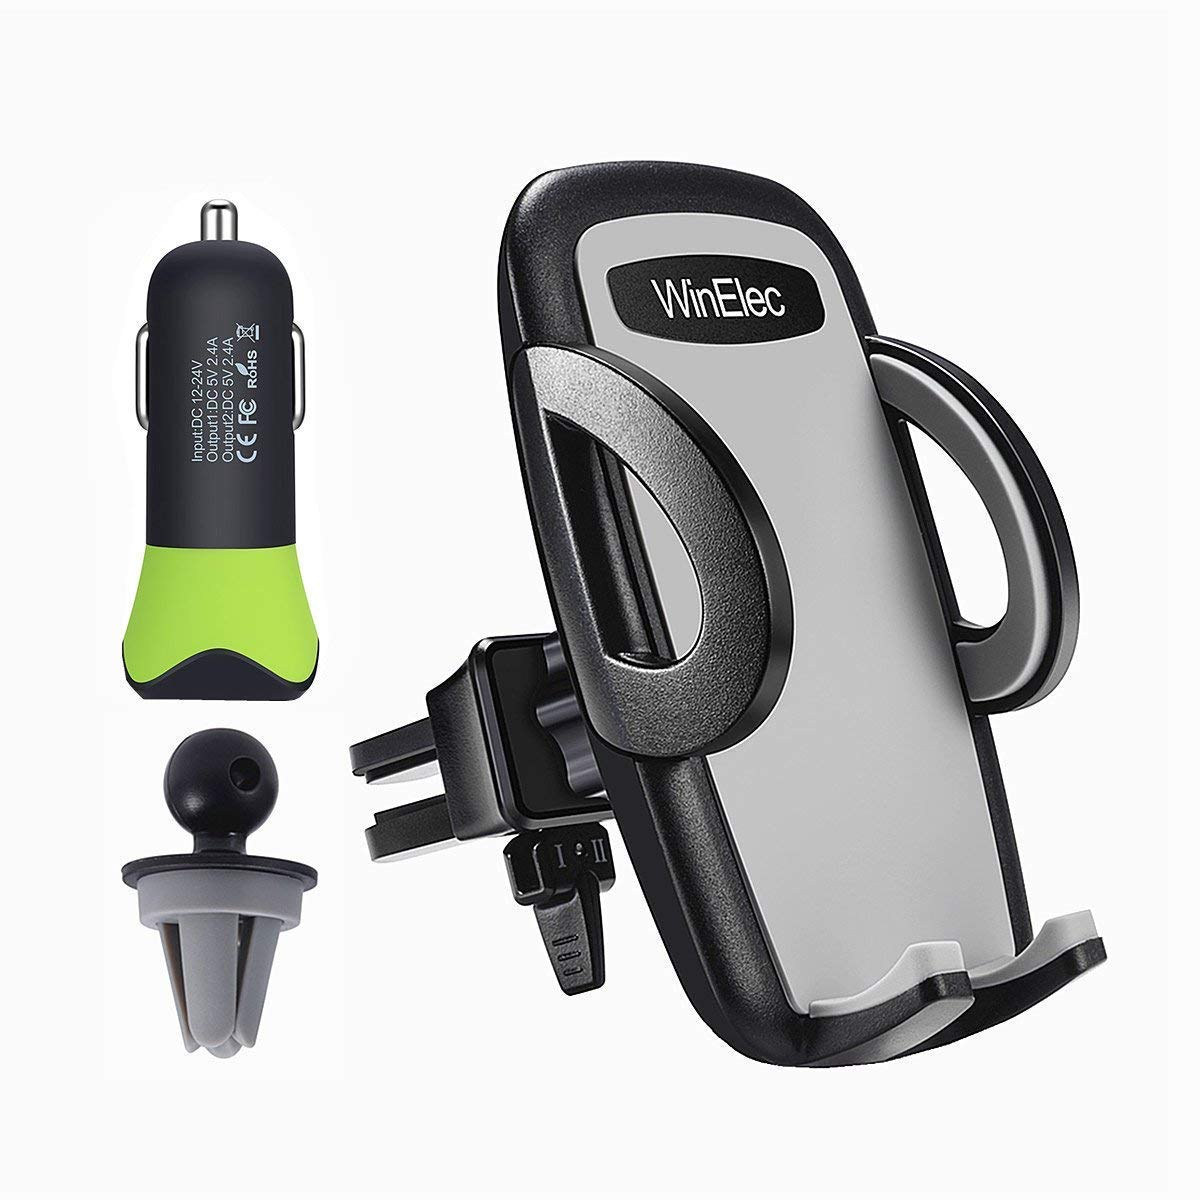 Car Phone Mount, 24W 4.8A Car Charger and Universal Smartphone Car Vent Phone Holder Compatible with iPhone X 8 7 6 Plus 6s Samsung Galaxy S8 S7 S6 S5 S4 LG Pixel Nexus and More Cell Phone WinElec